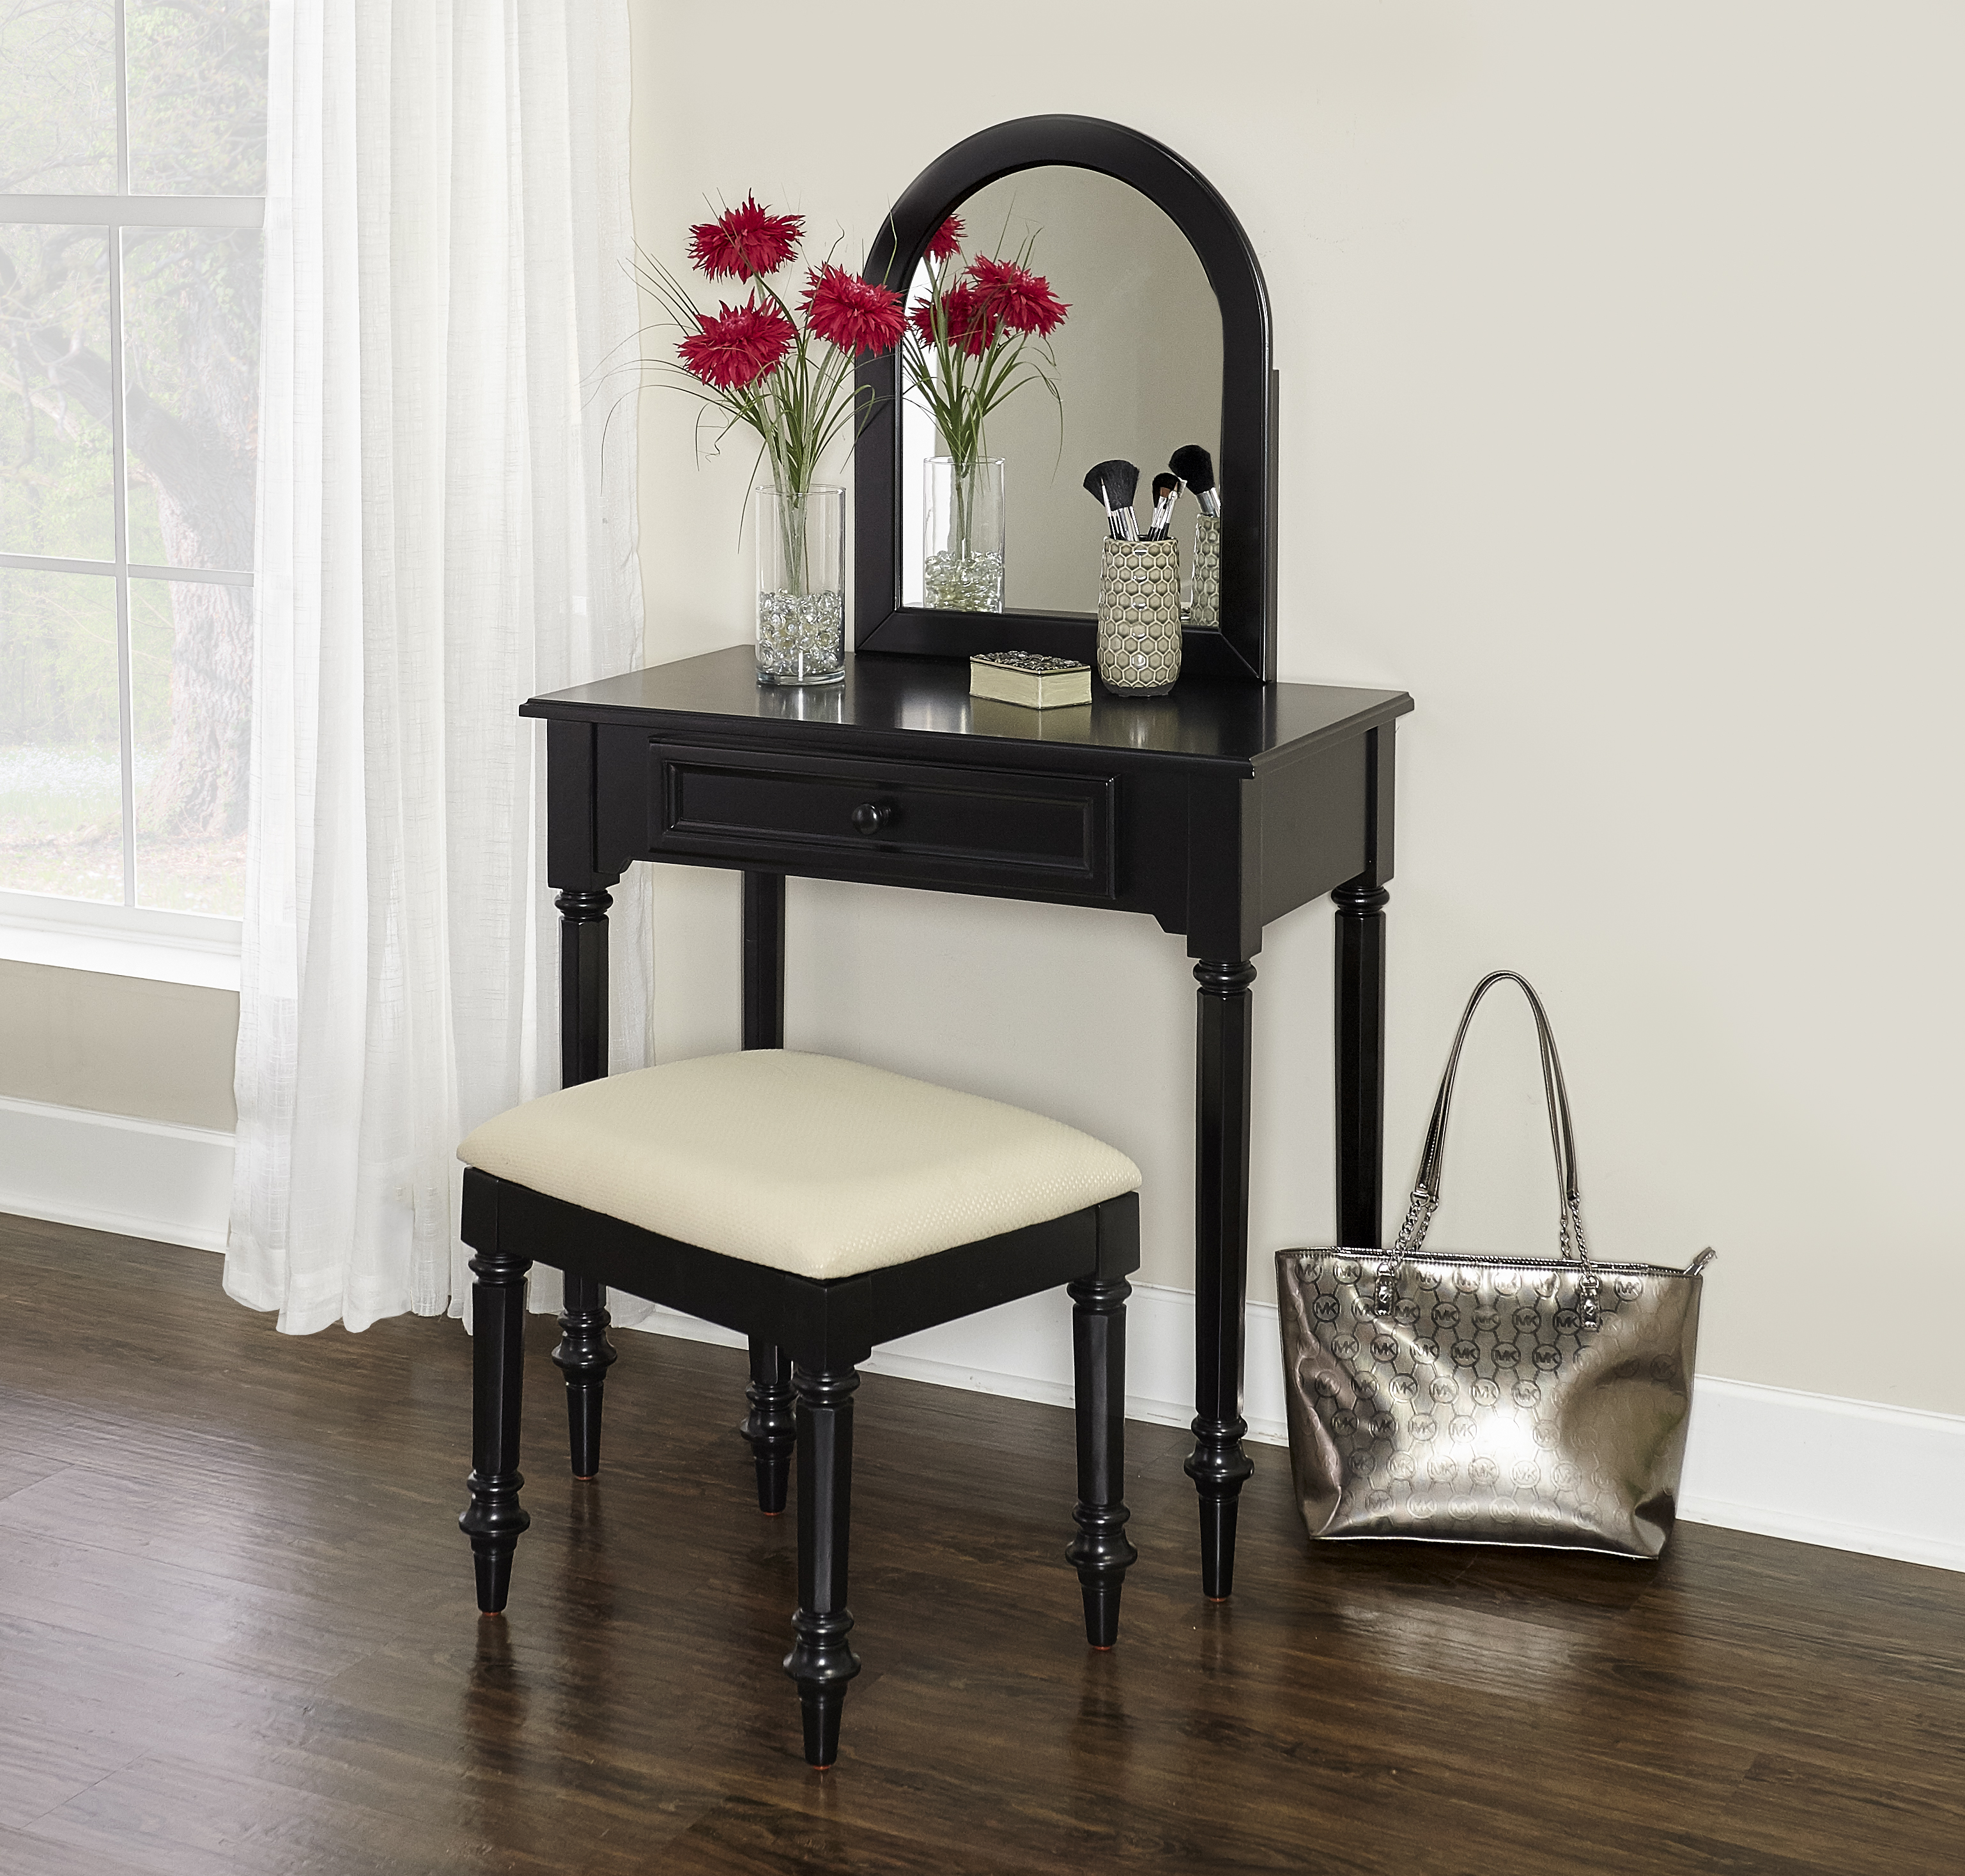 Blackledge Vanity with Stool, Black by Powell